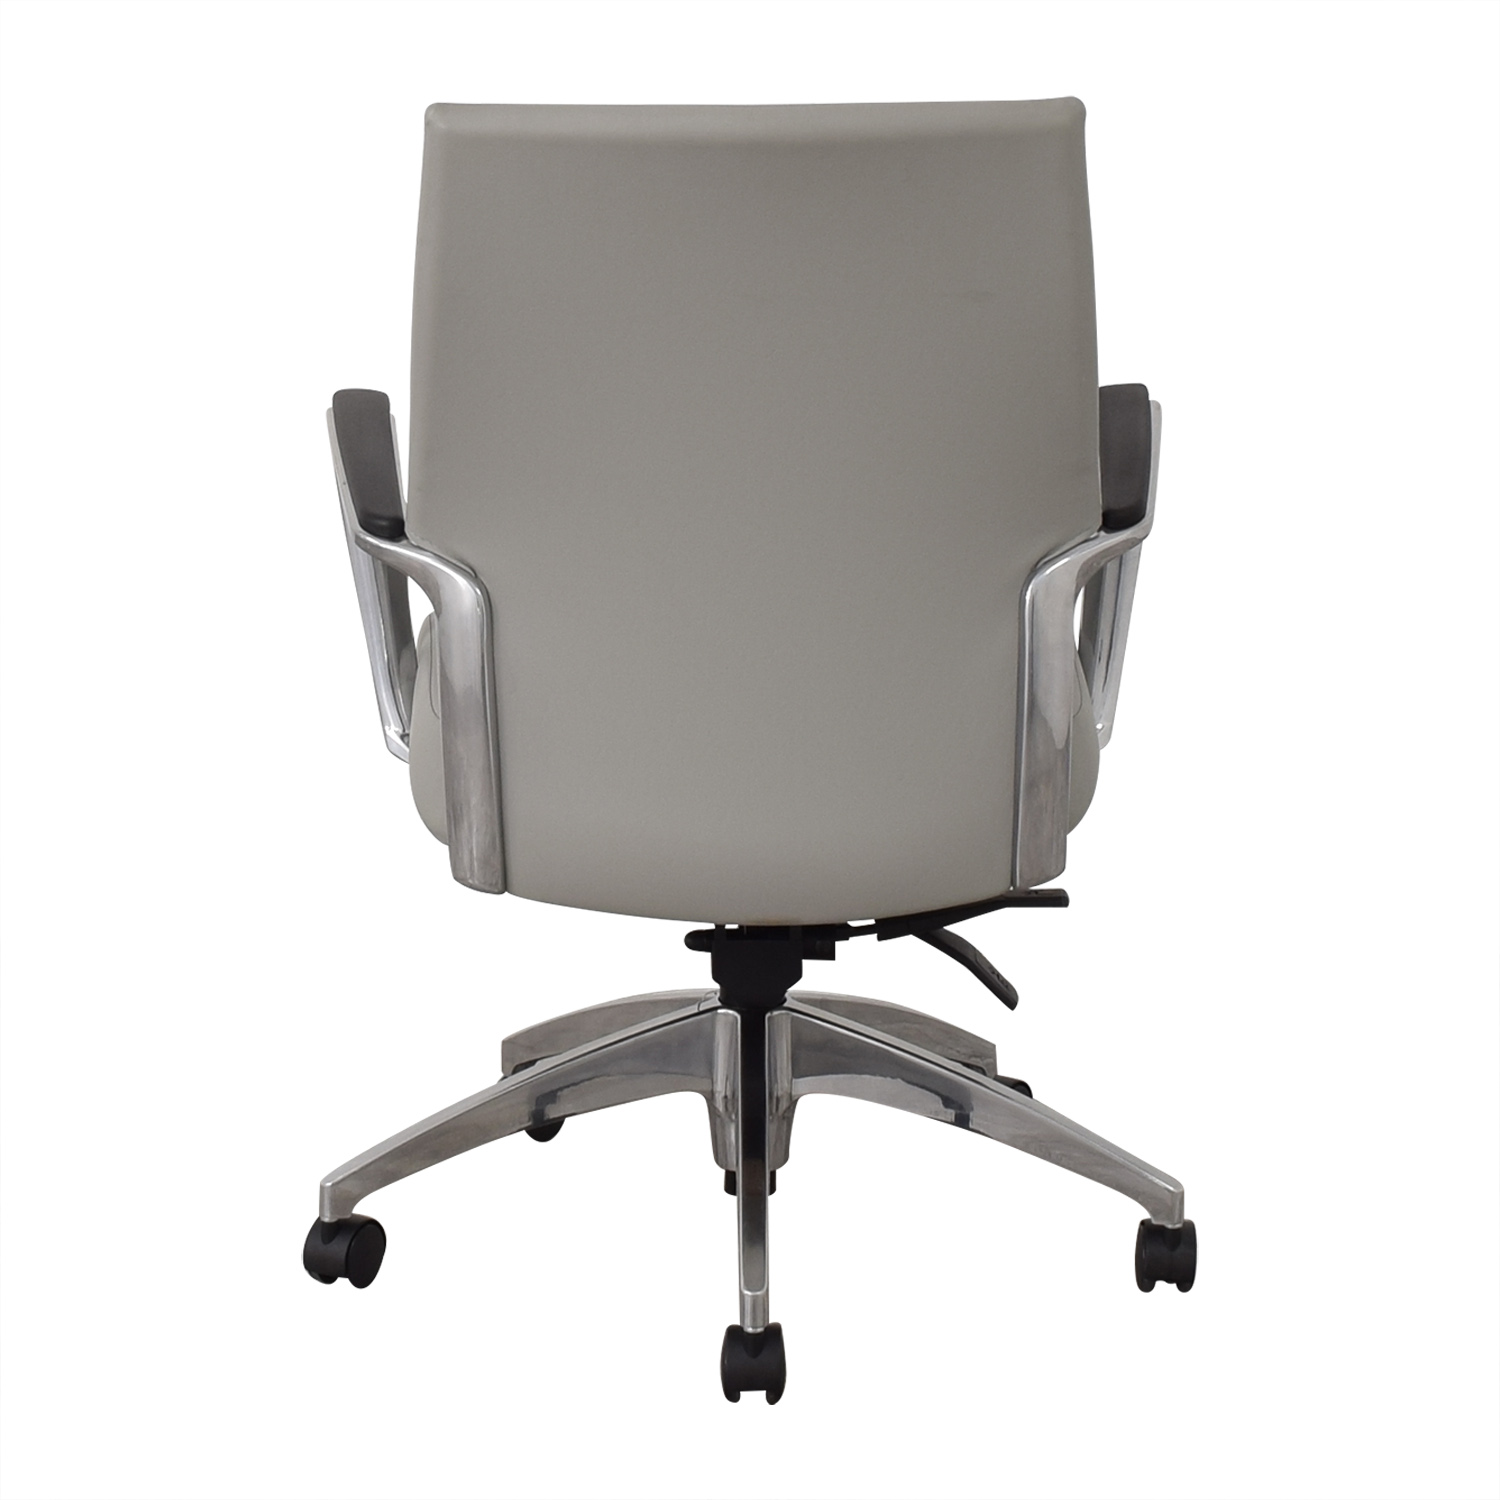 Global Accord Upholstered Medium Back Tilter Chair / Chairs